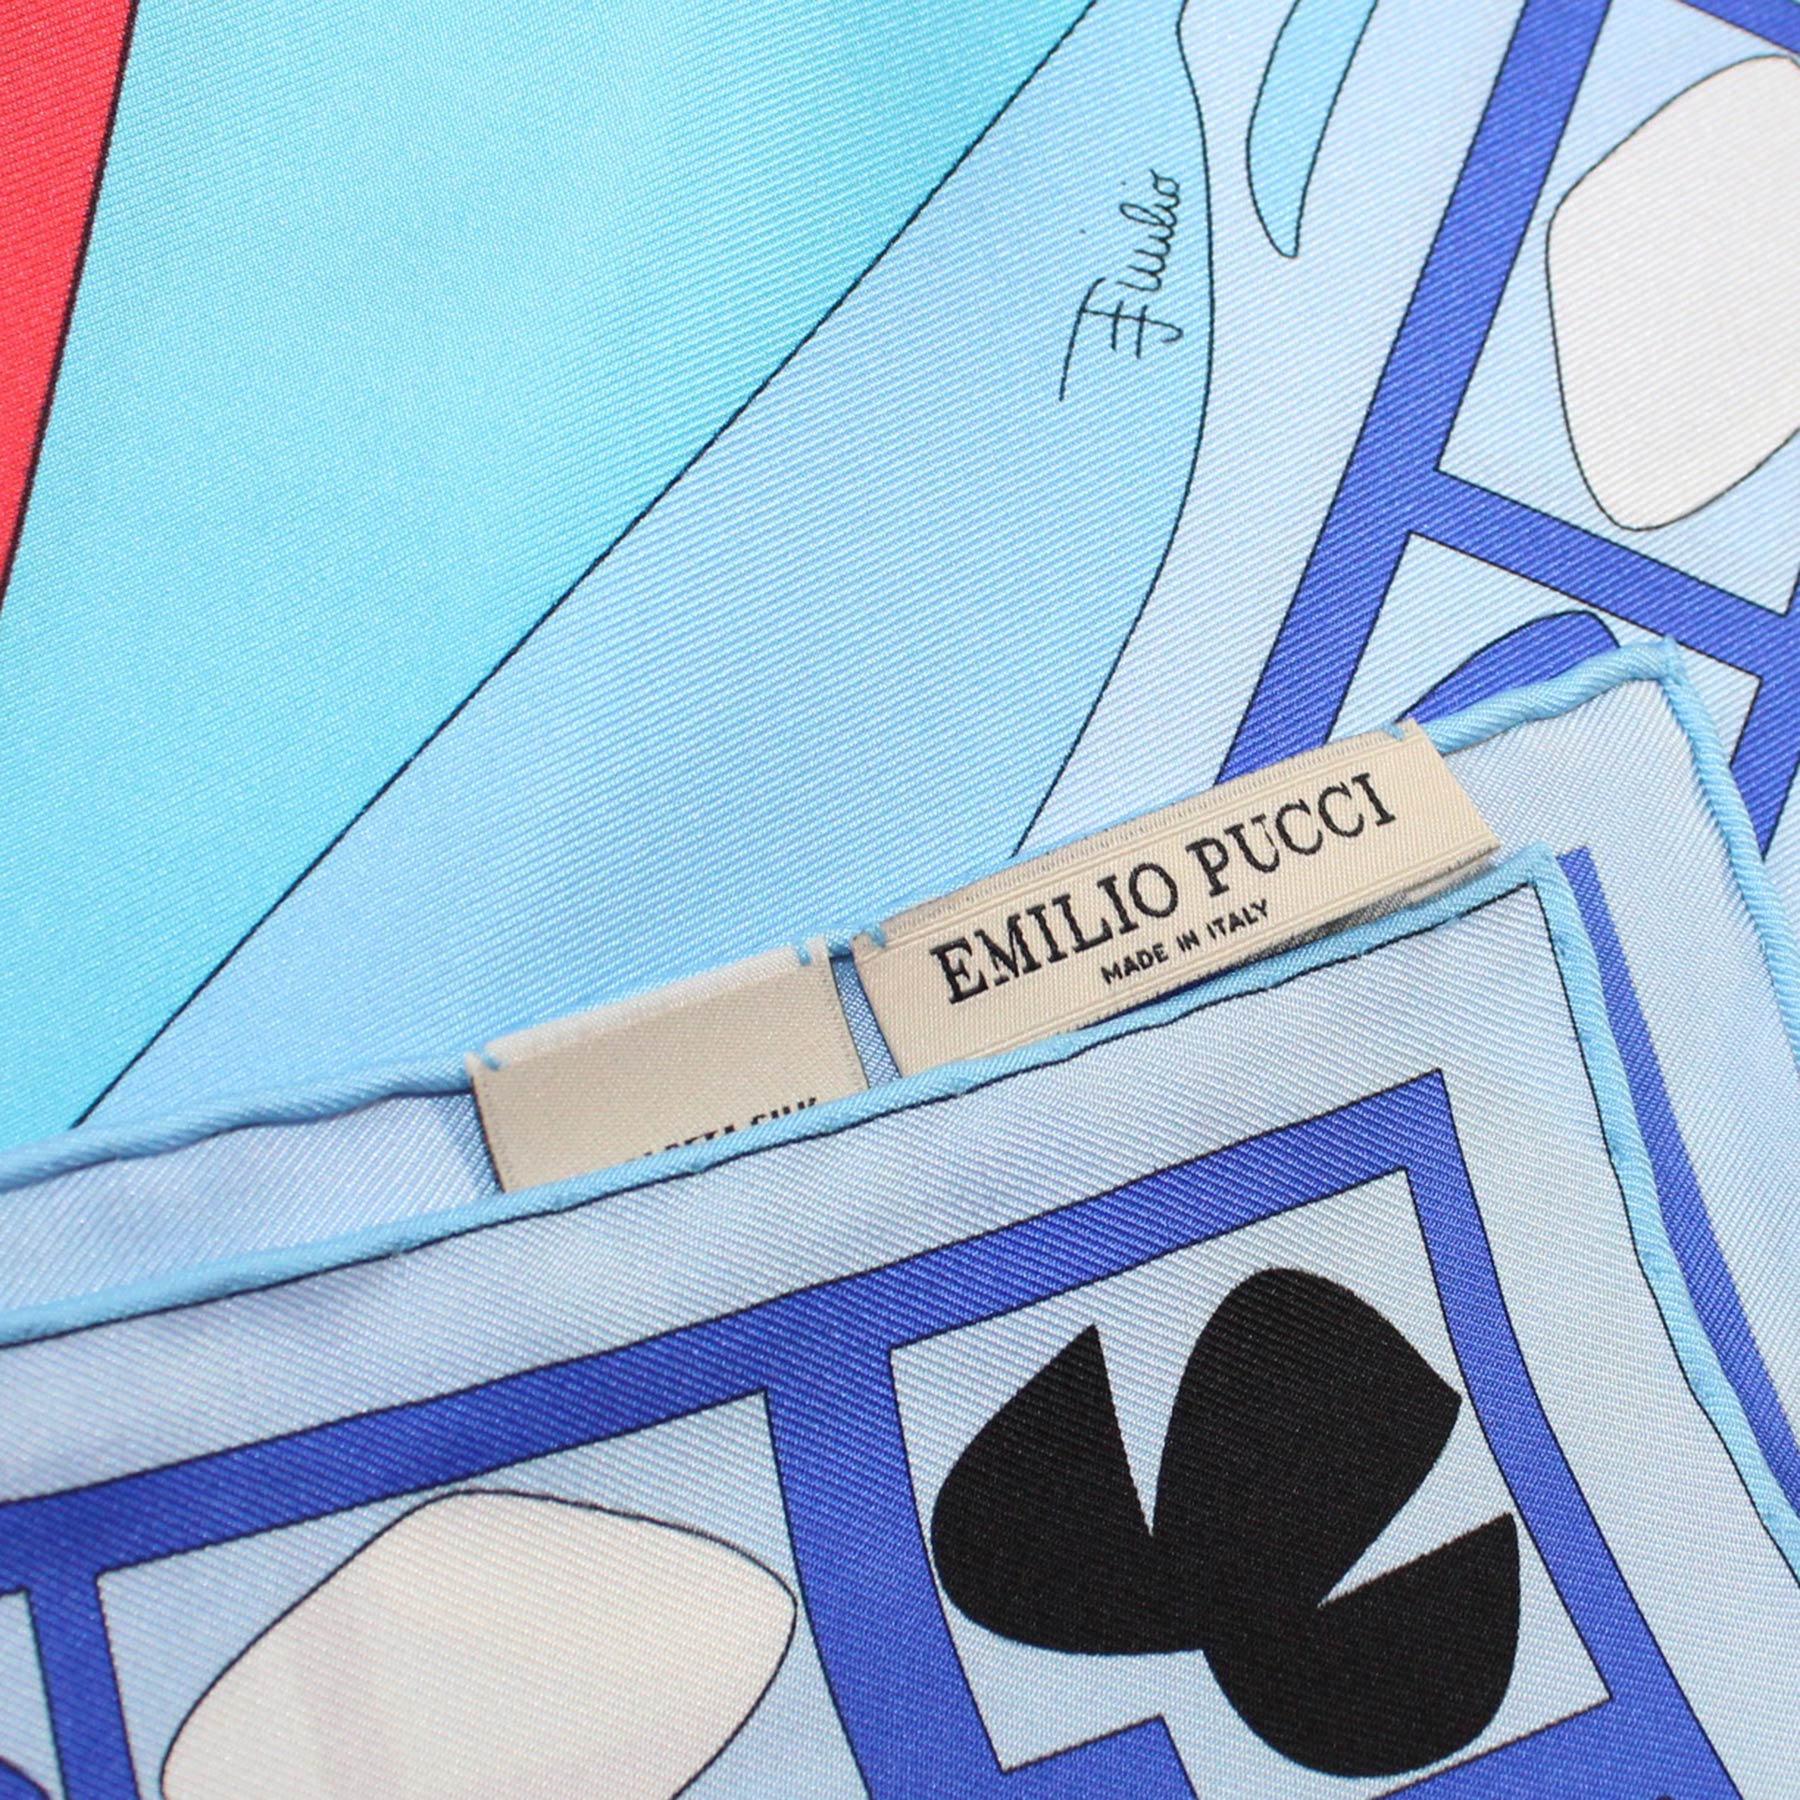 Emilio Pucci Silk Scarf Blue Red Design